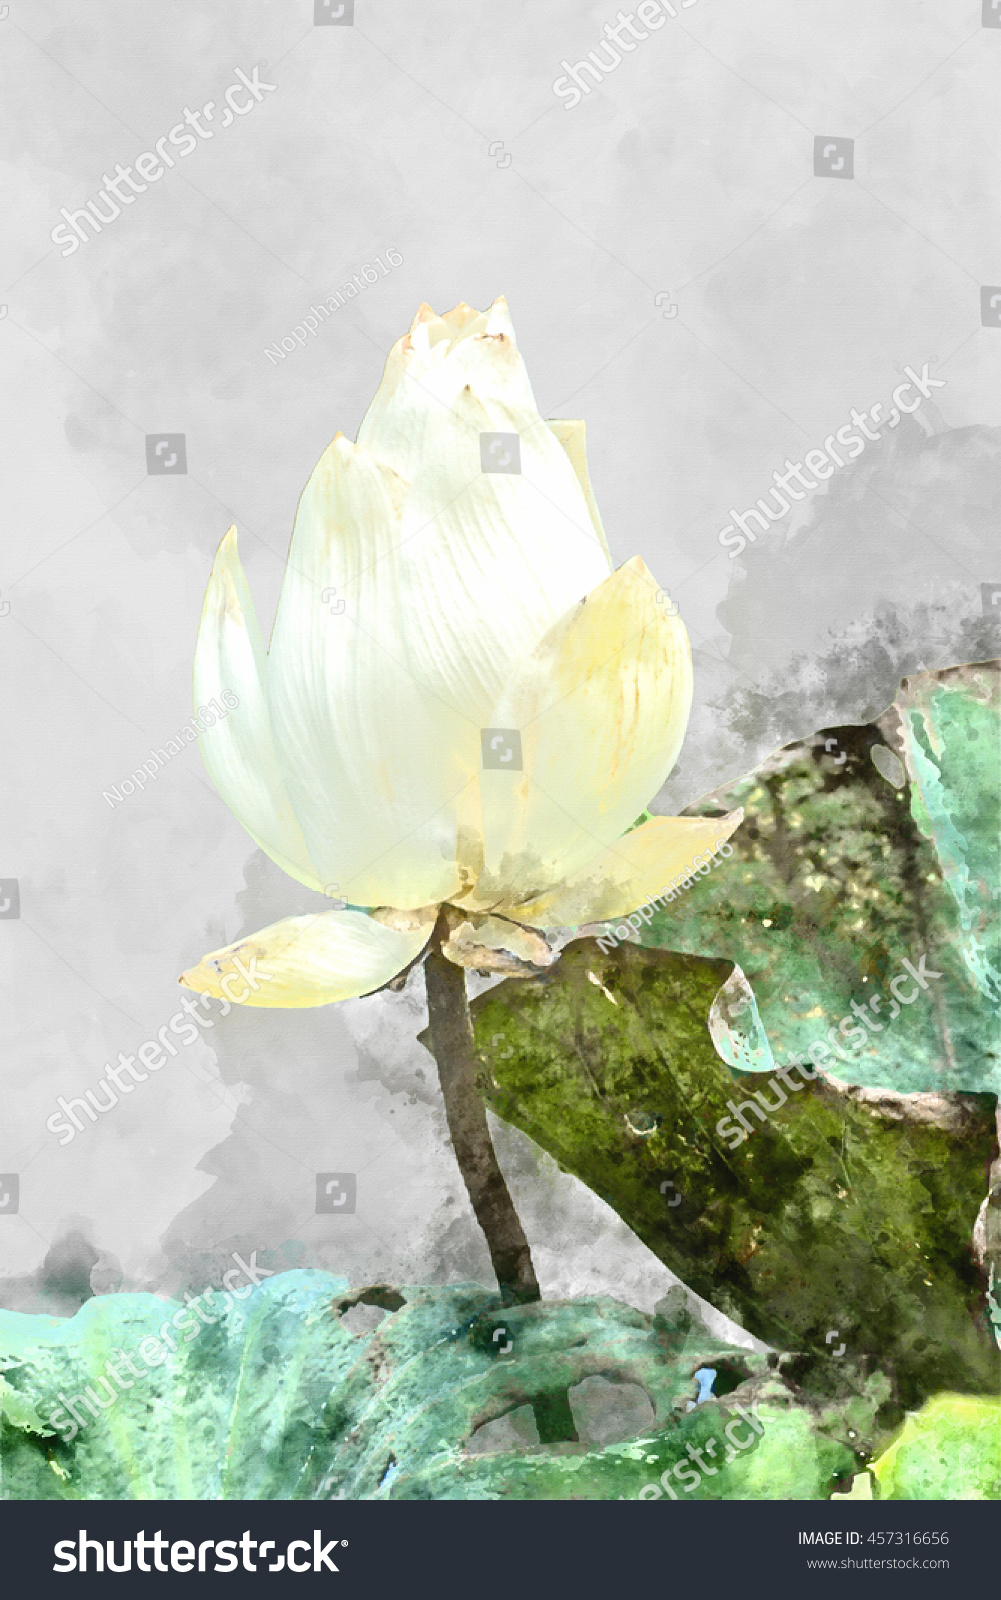 Scientific name for lotus flower image collections flower wallpaper hd watercolor image white lotus flower scientific stock illustration watercolor image of white lotus flower scientific name mightylinksfo